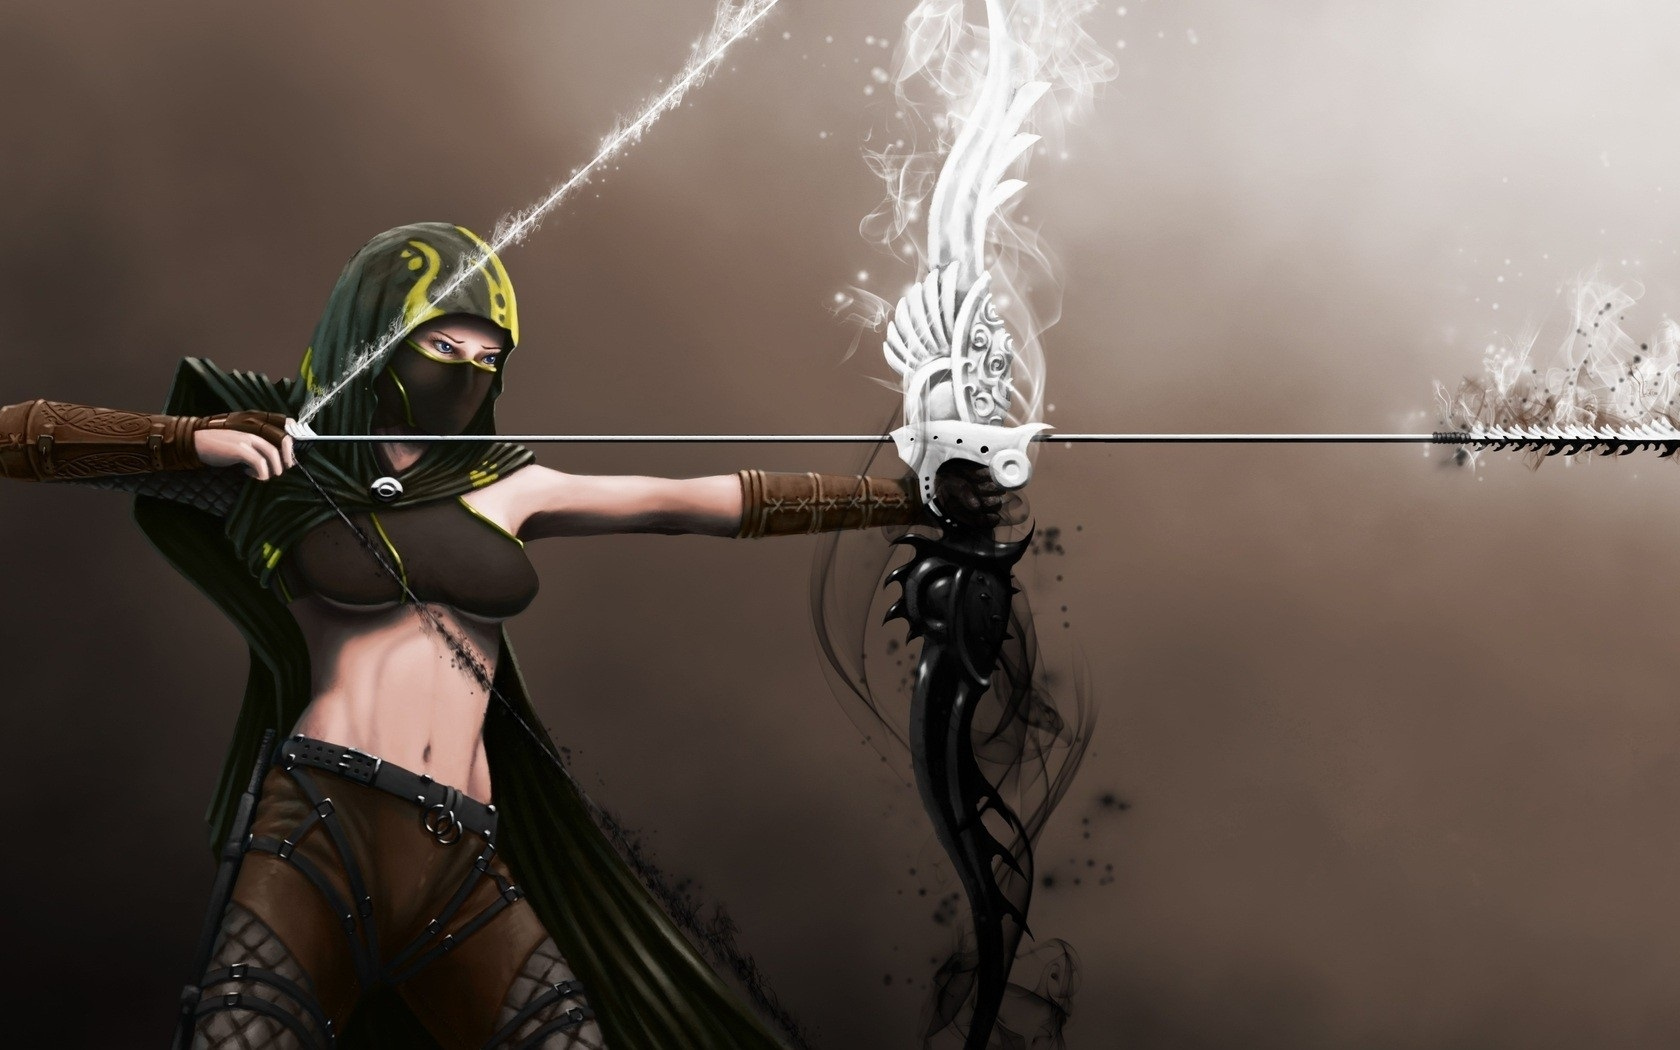 Wallpaper Fantasy Girl Abdomen Bow Archer Mask 1680x1050 HD